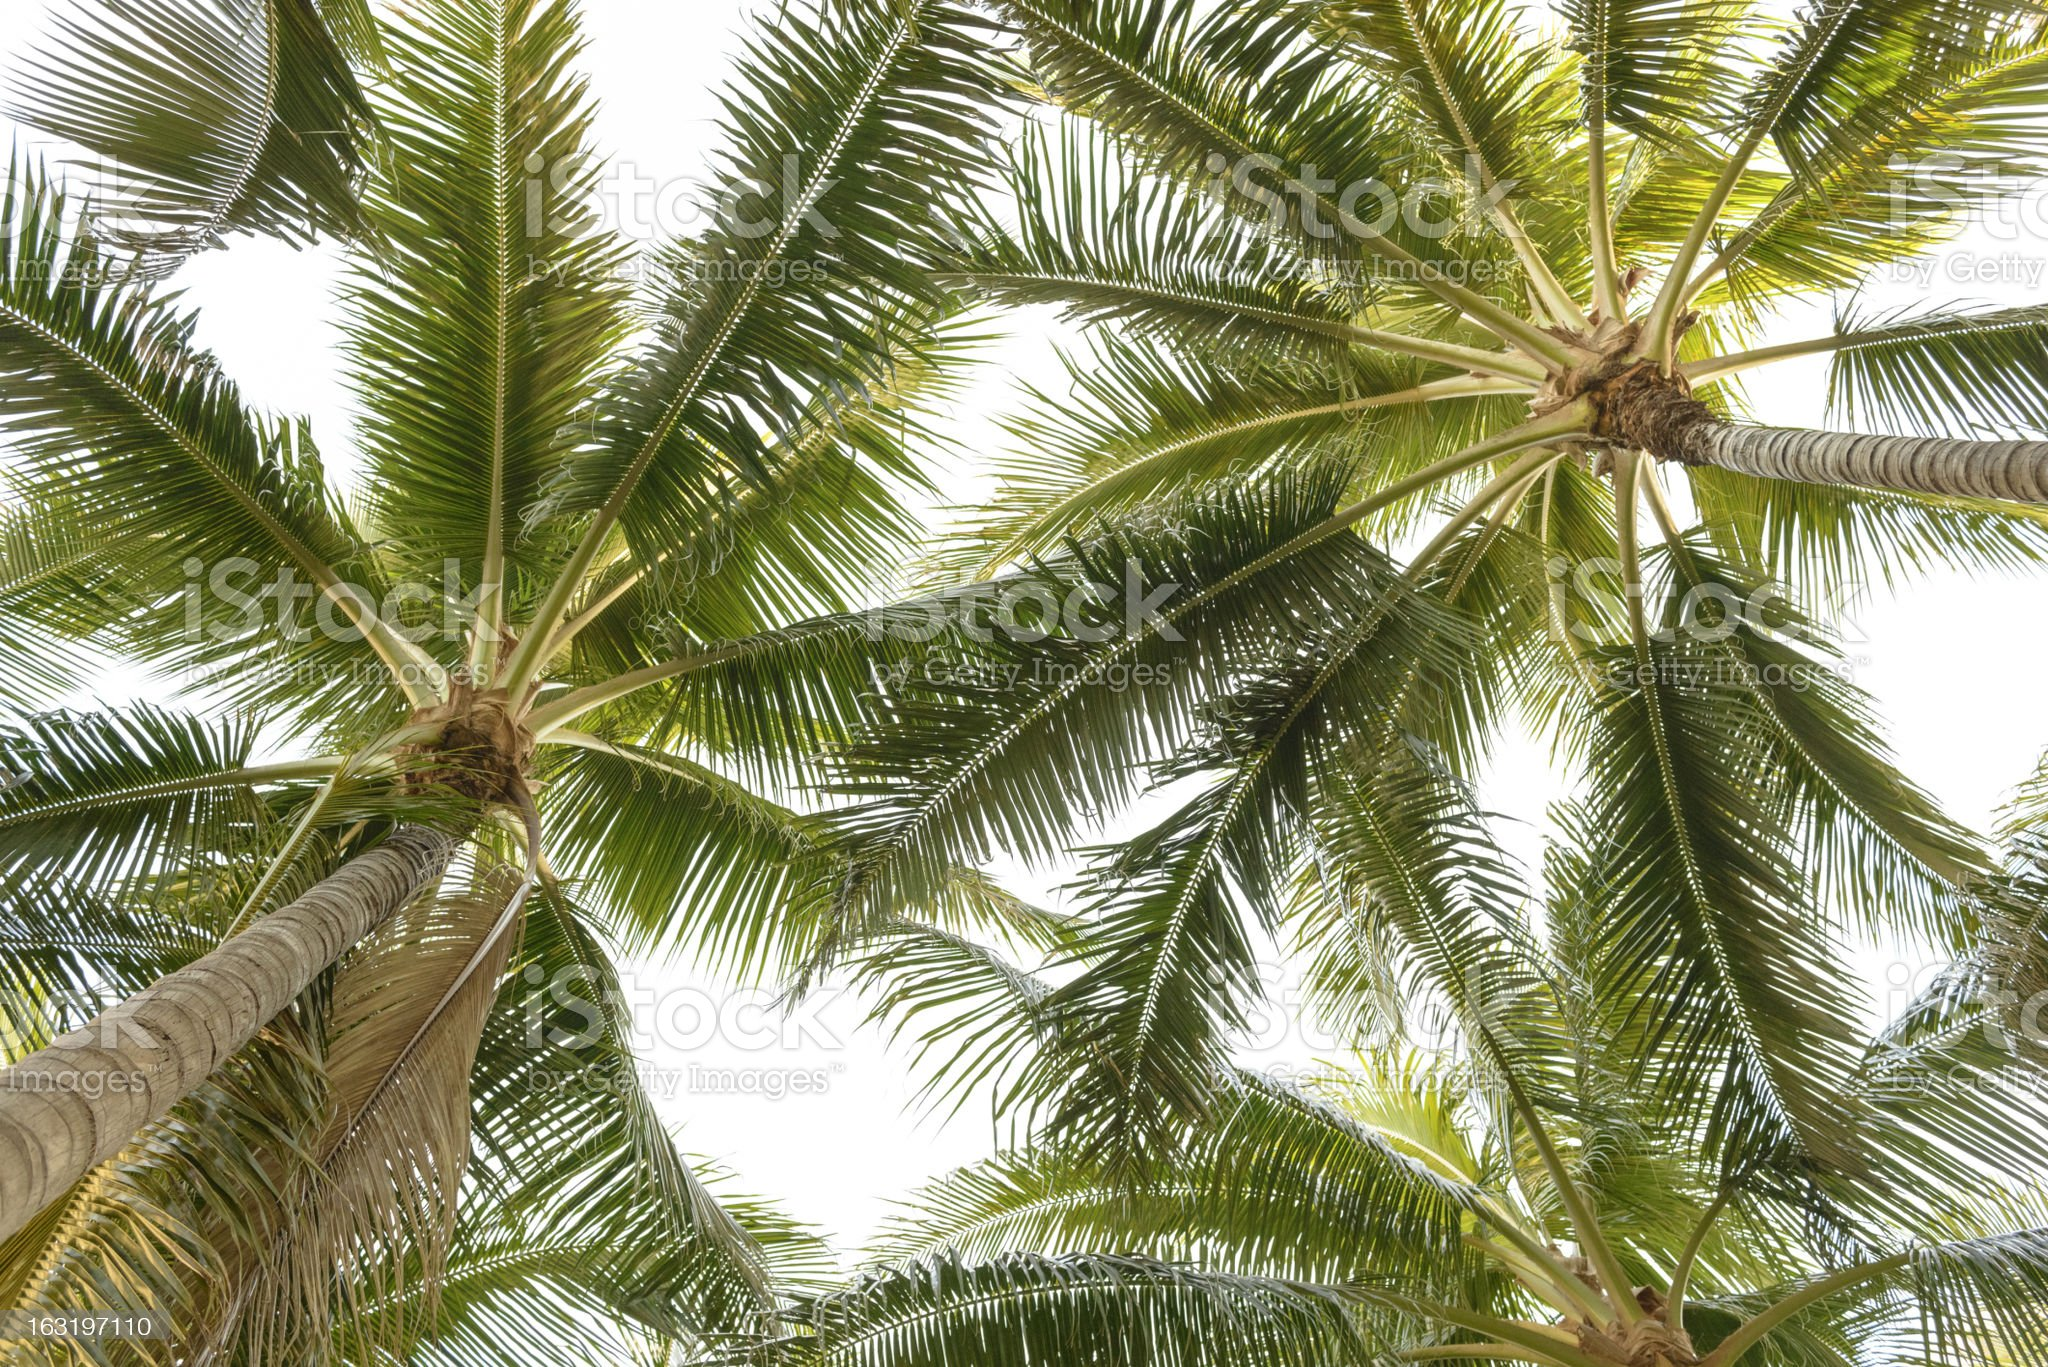 Looking up at a cluster of palm trees royalty-free stock photo